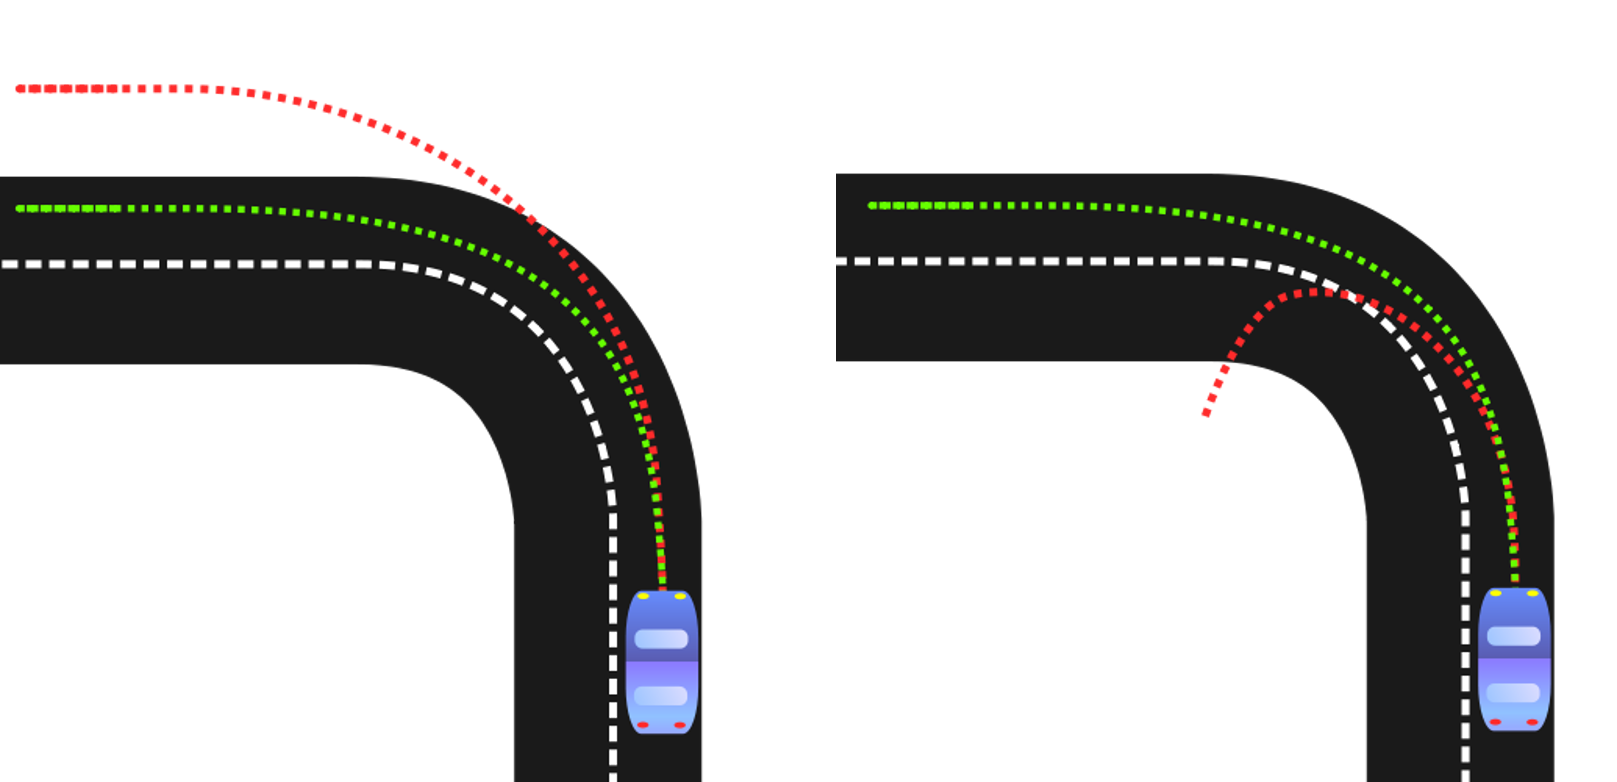 A turning car in oversteer and understeer situations